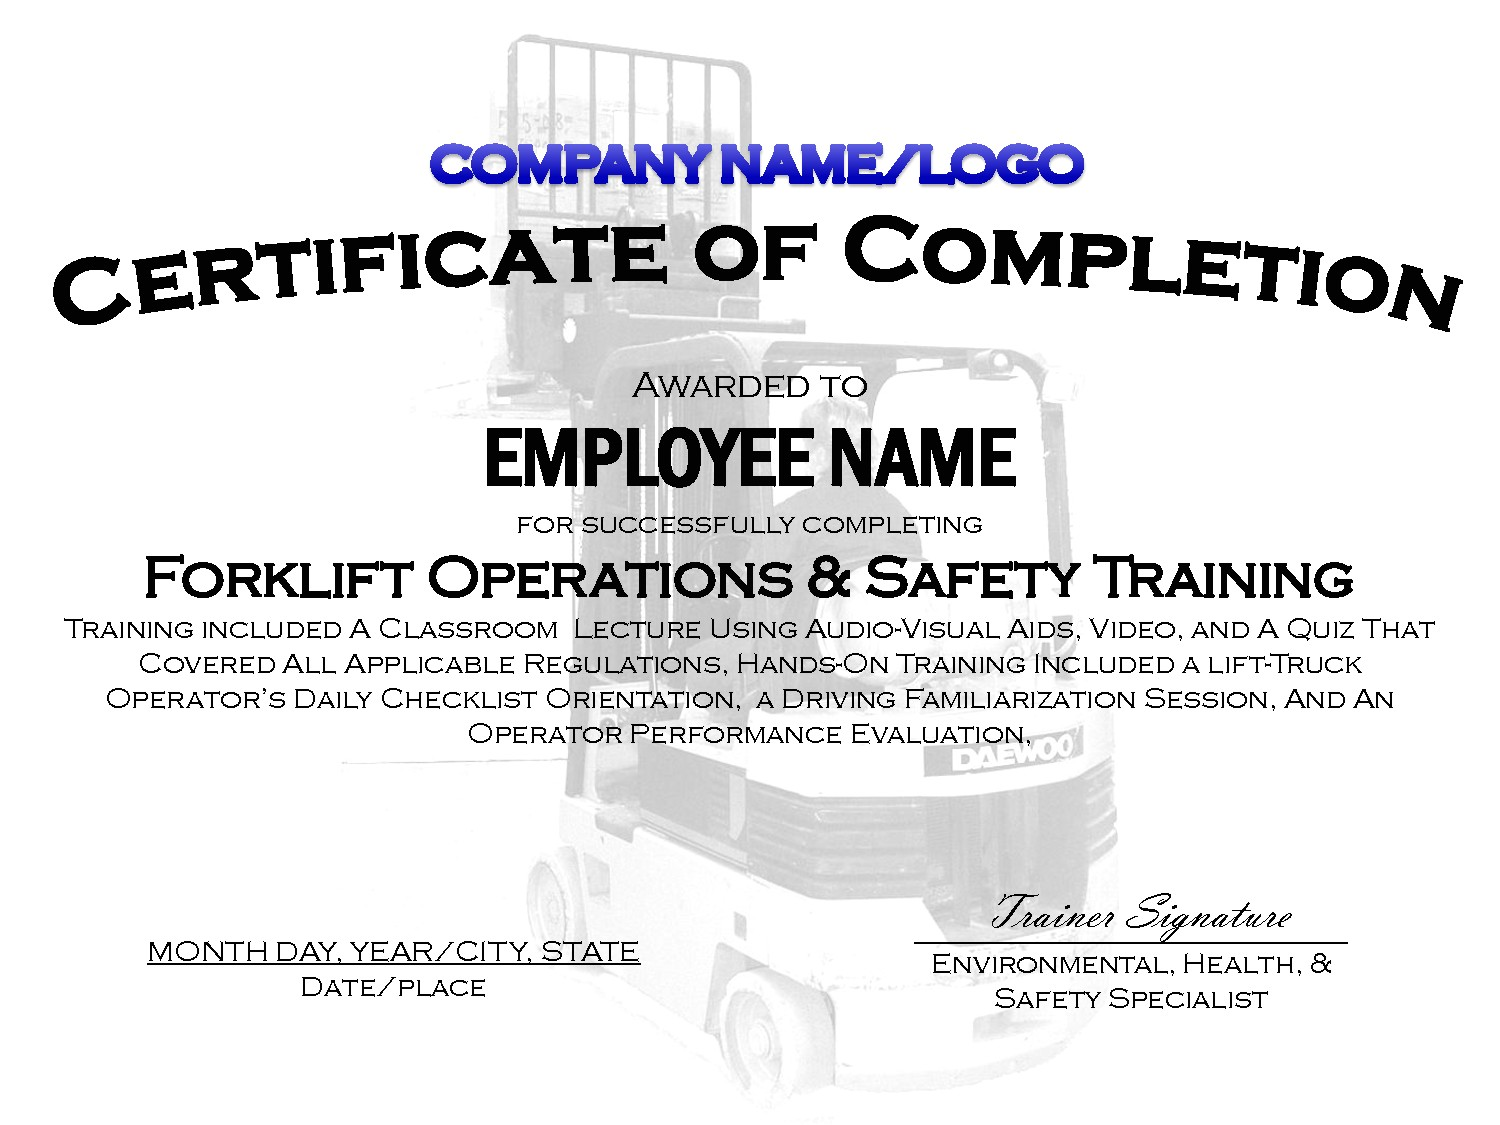 Forklift Operator Certificate Template 9 Best Images Of Printable Safety Certificates Safety